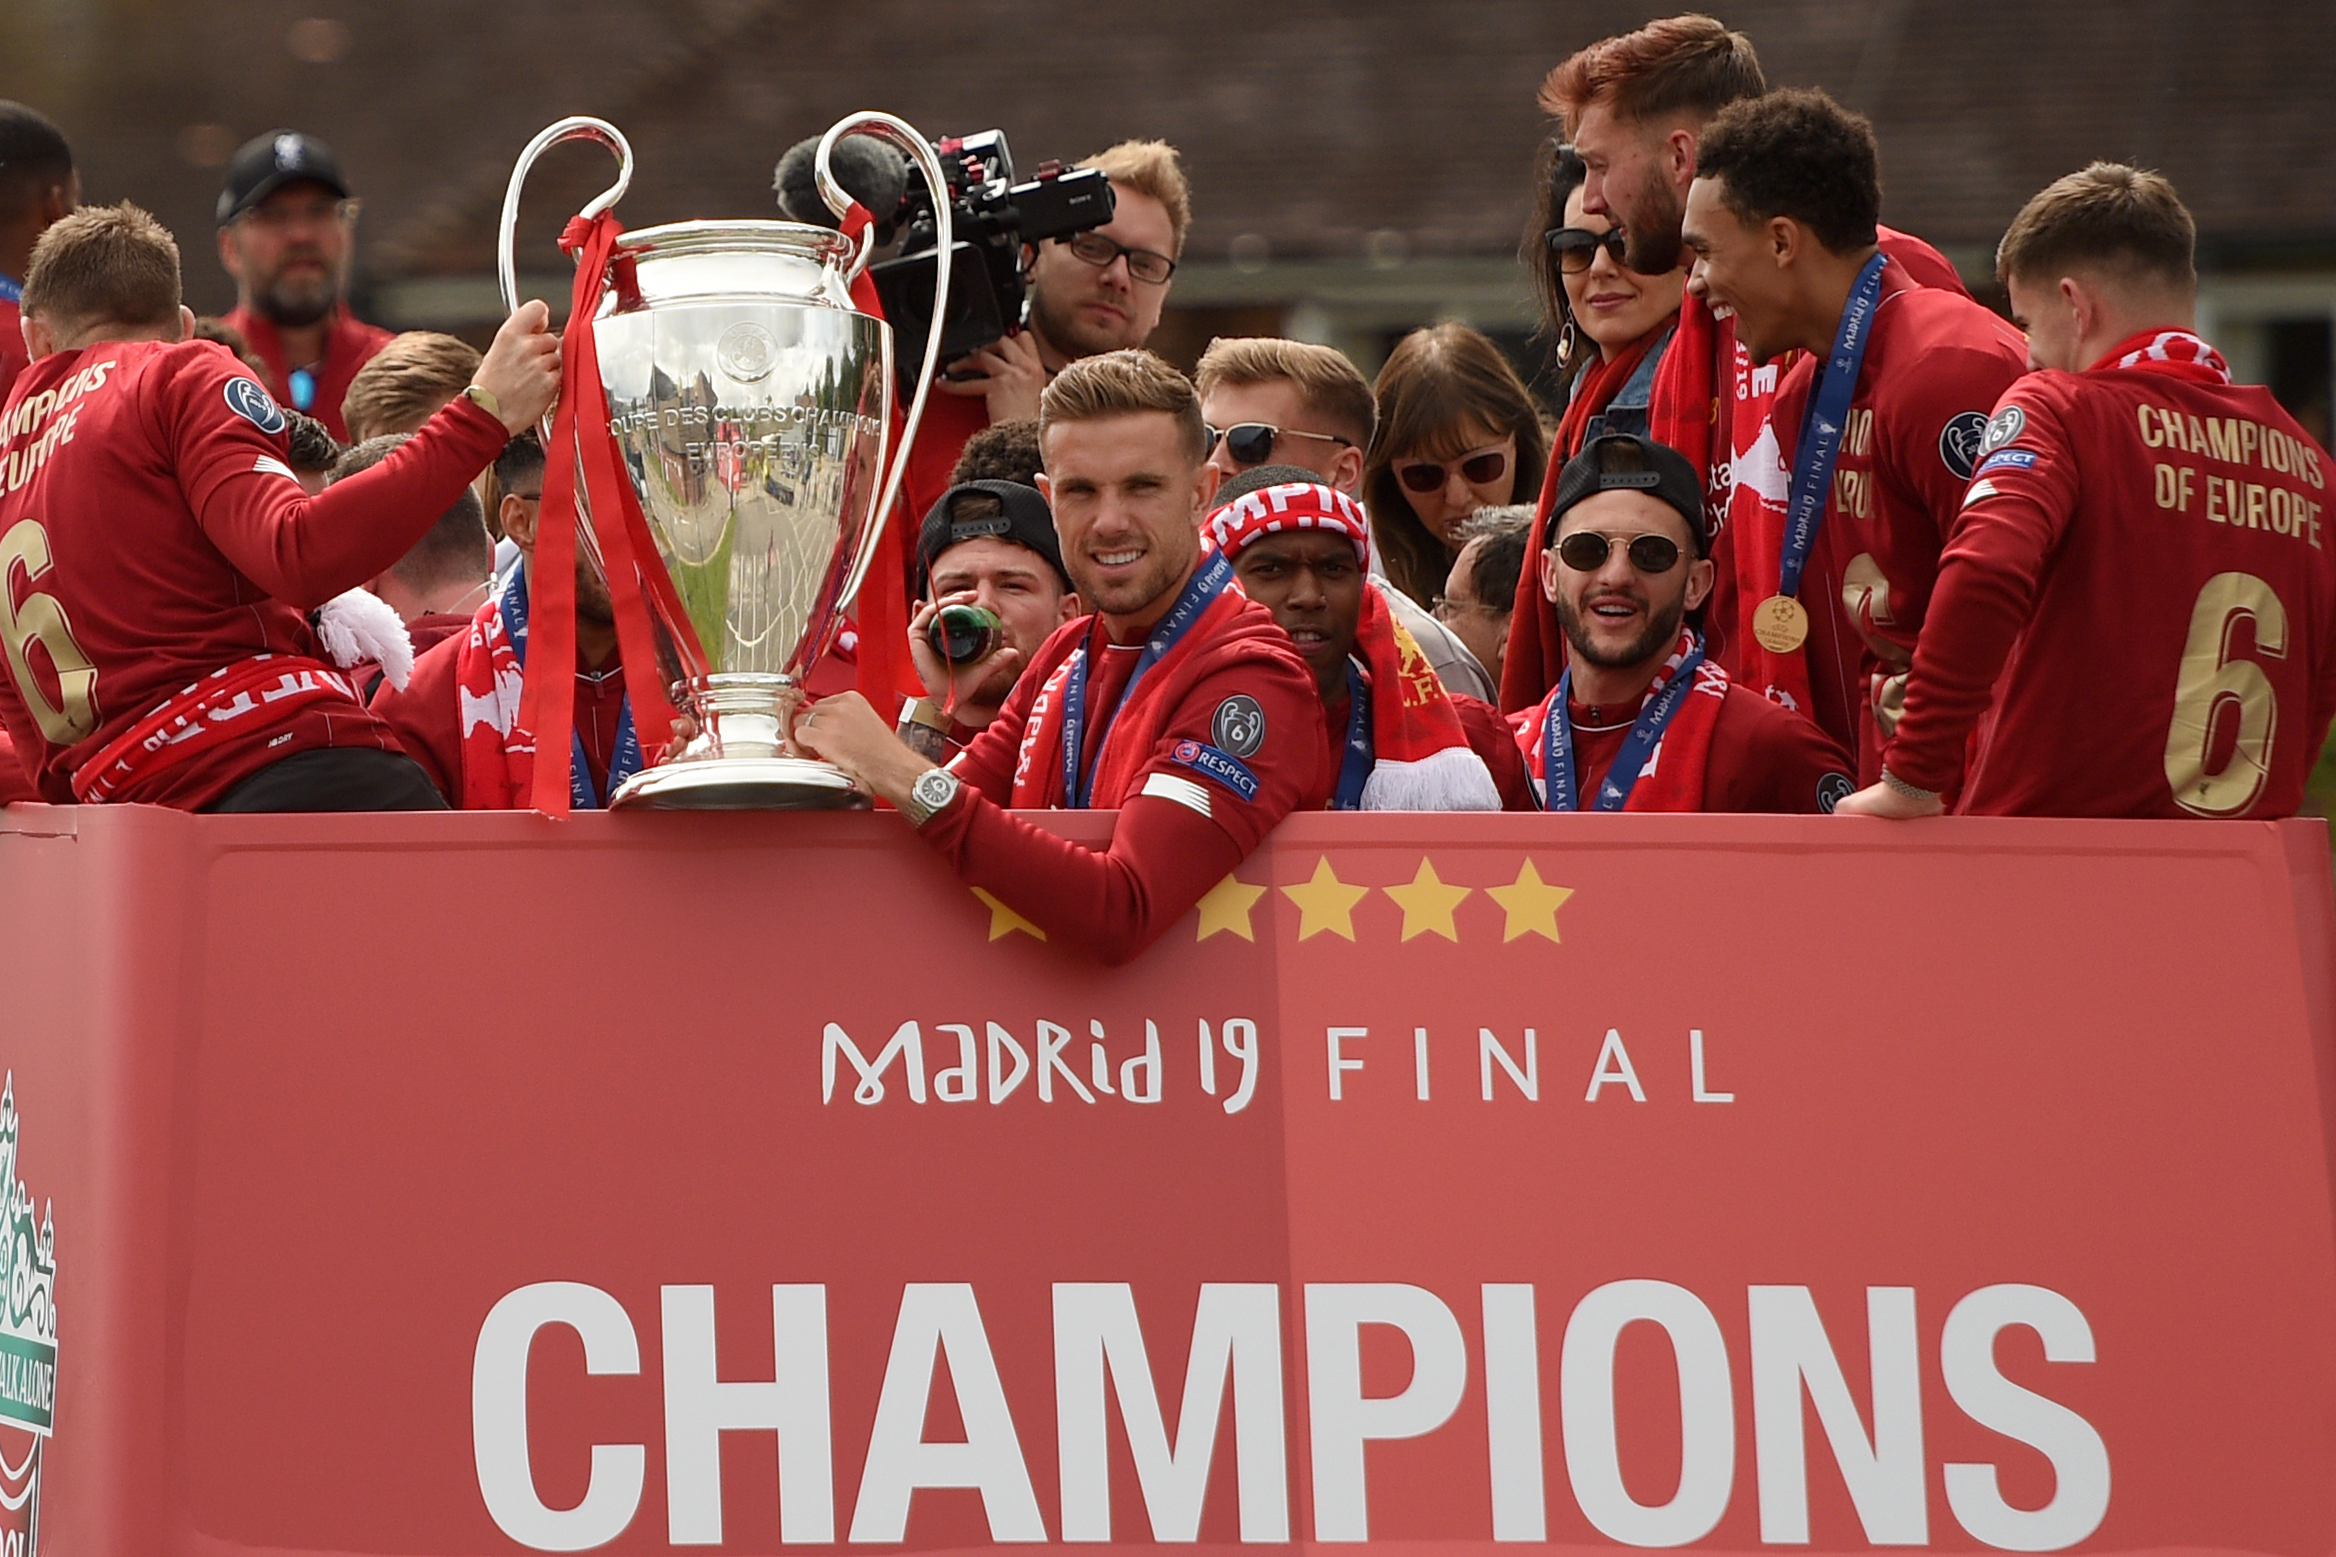 Liverpool Parade 2019 Twitter Reaction Photos Videos And More After Ucl Win Bleacher Report Latest News Videos And Highlights